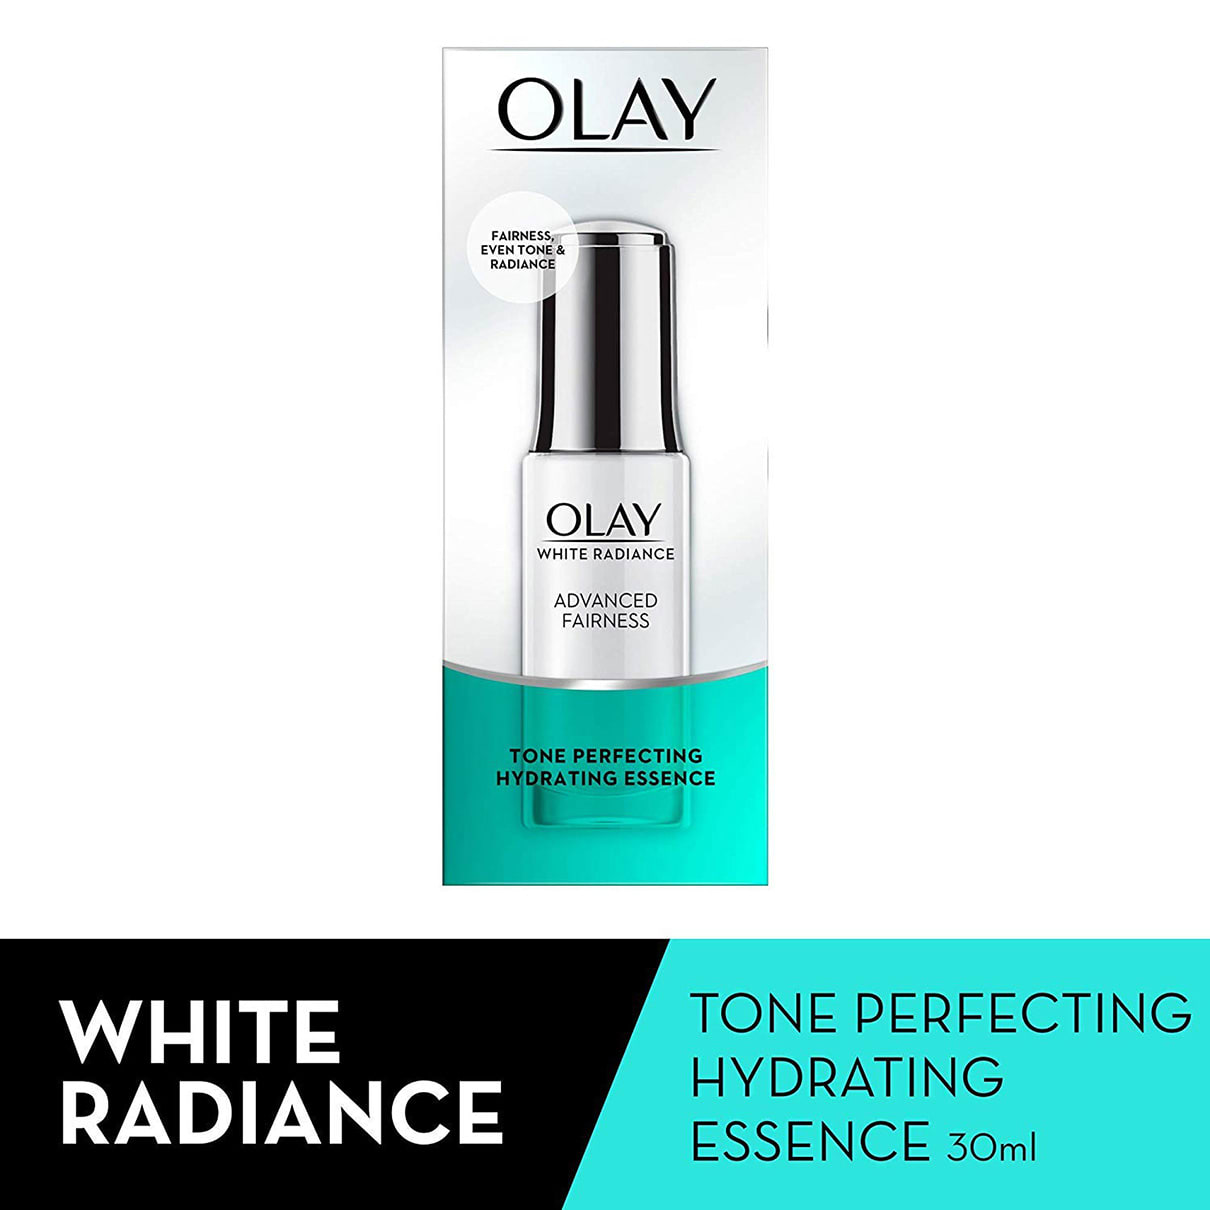 Olay White Radiance Tone Perfecting Hydrating Essence, 30 ML